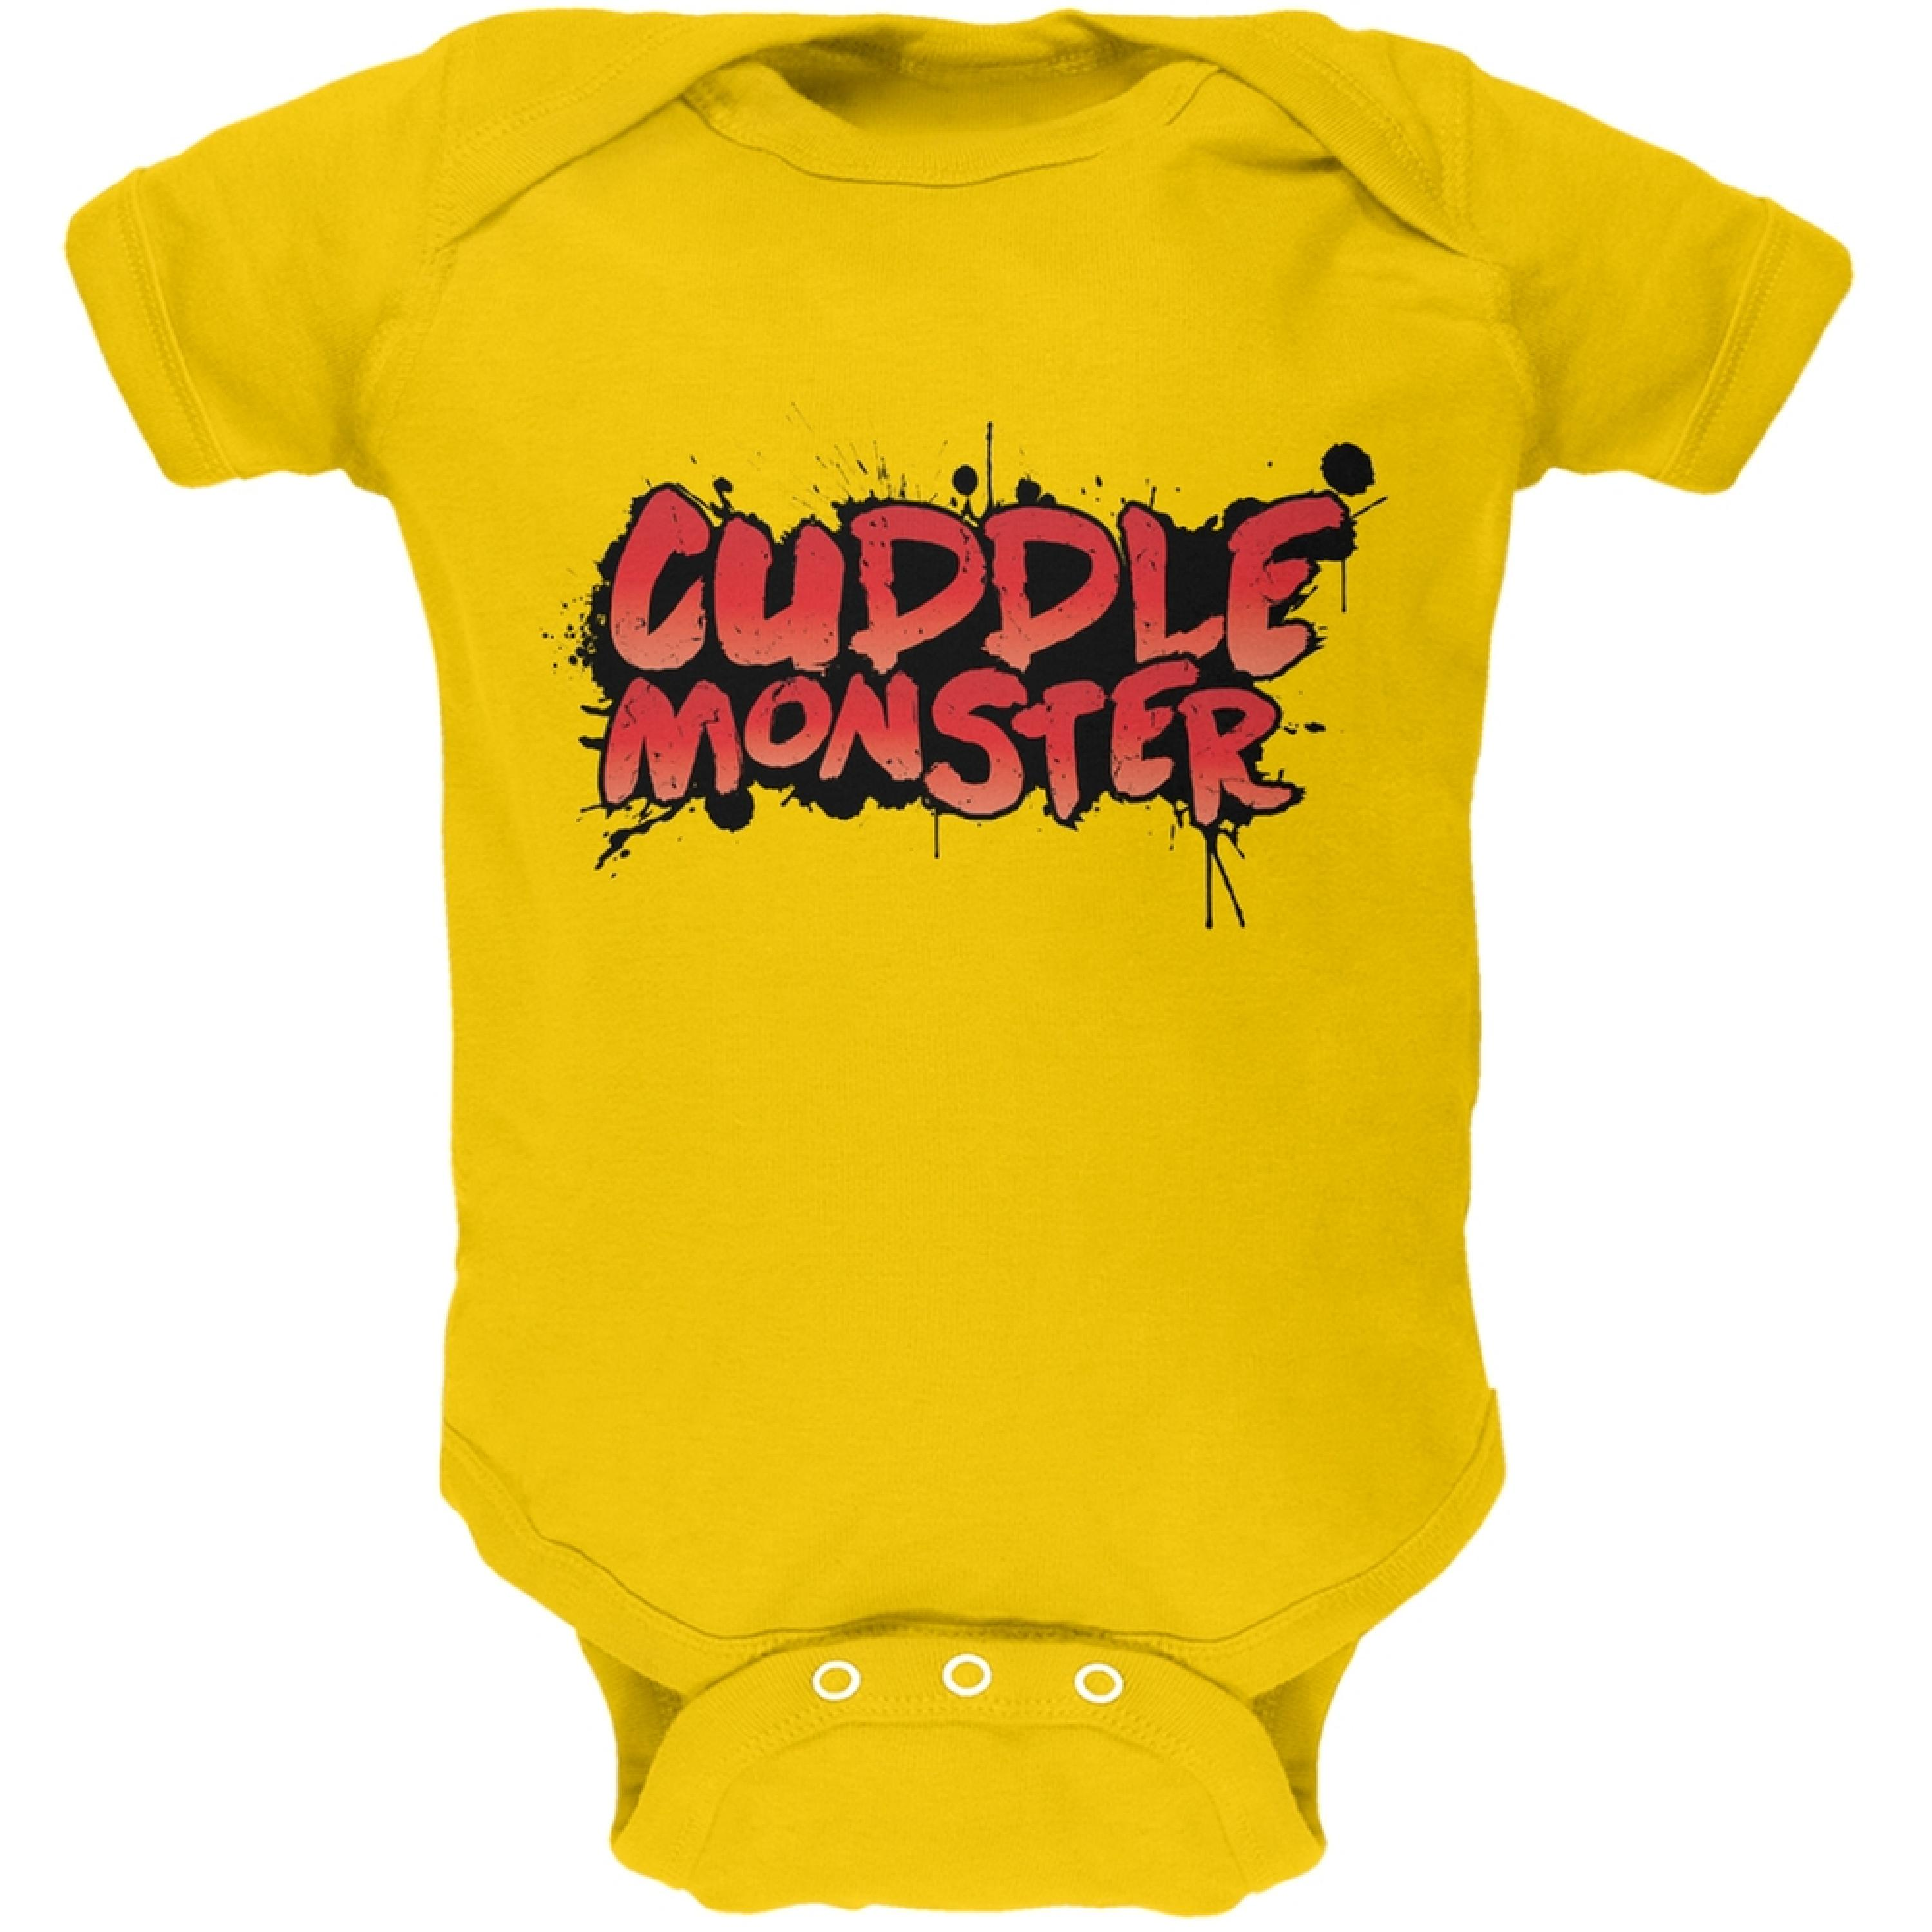 Cuddle Monster Yellow Soft Baby One Piece